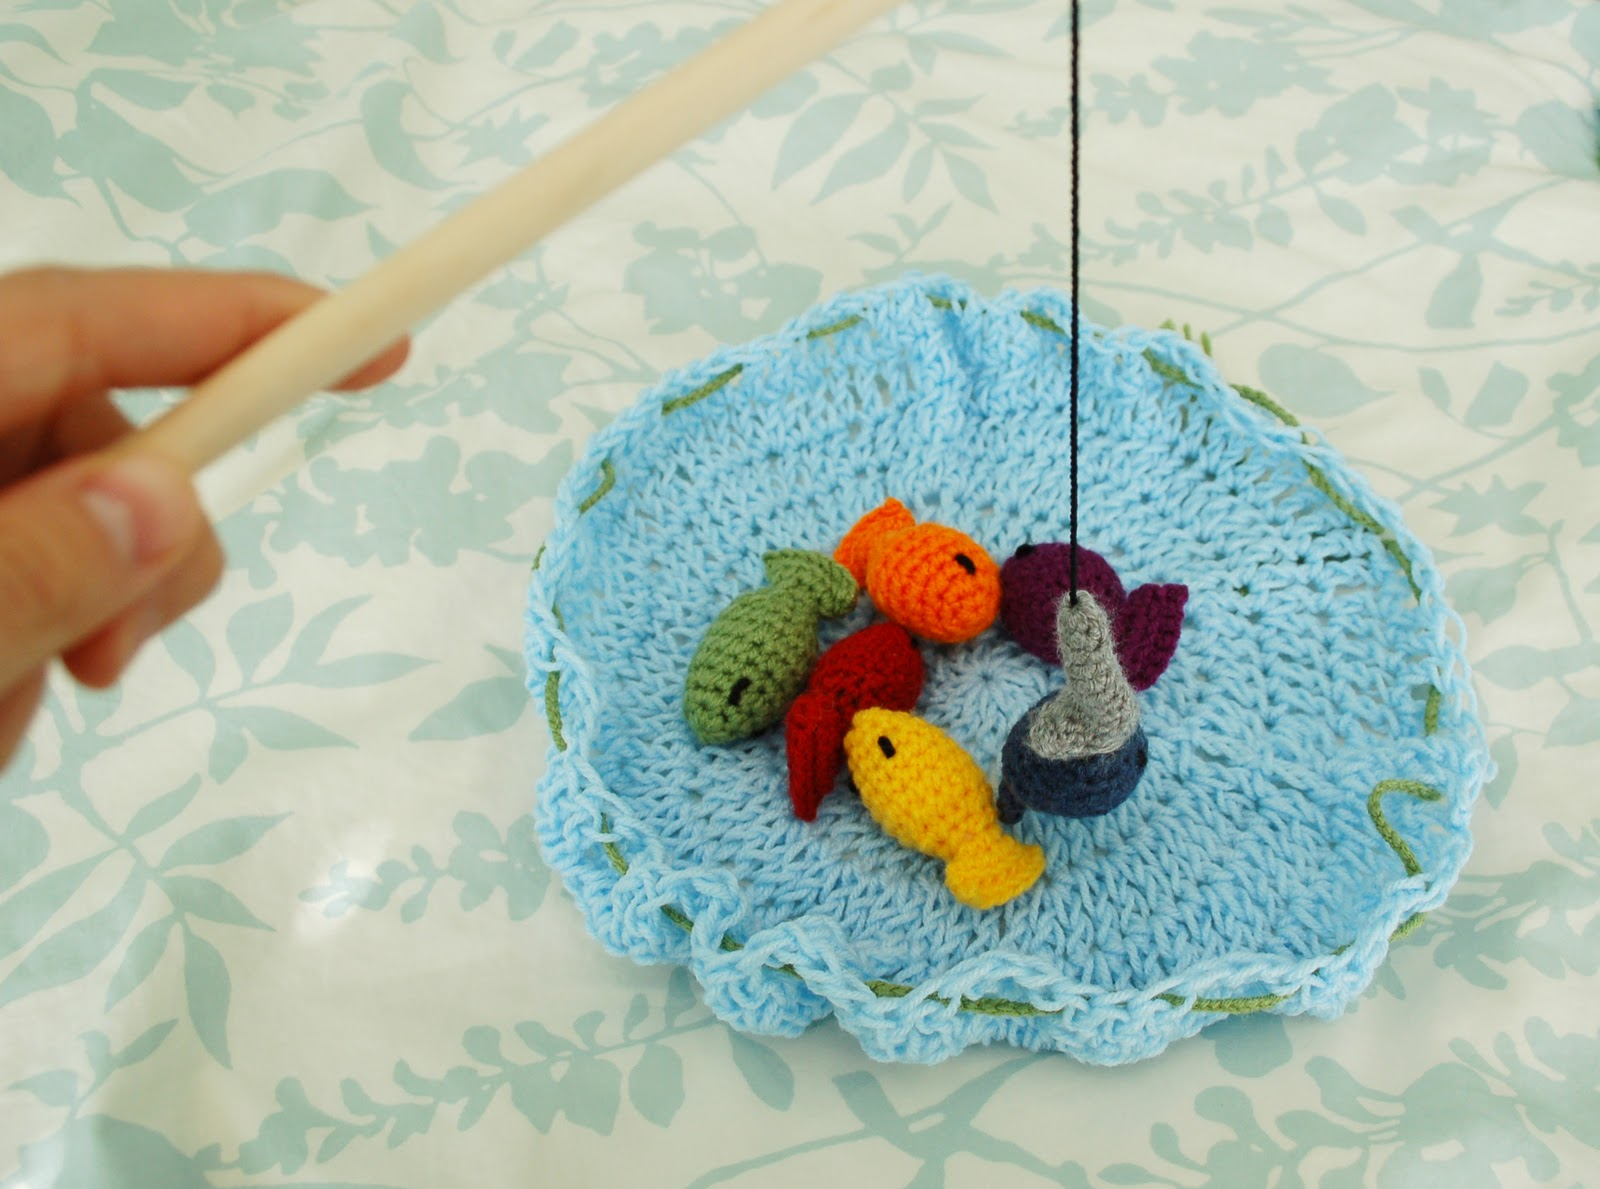 Crocheting Games : 2000 Free Amigurumi Patterns: Fishing Game Toy